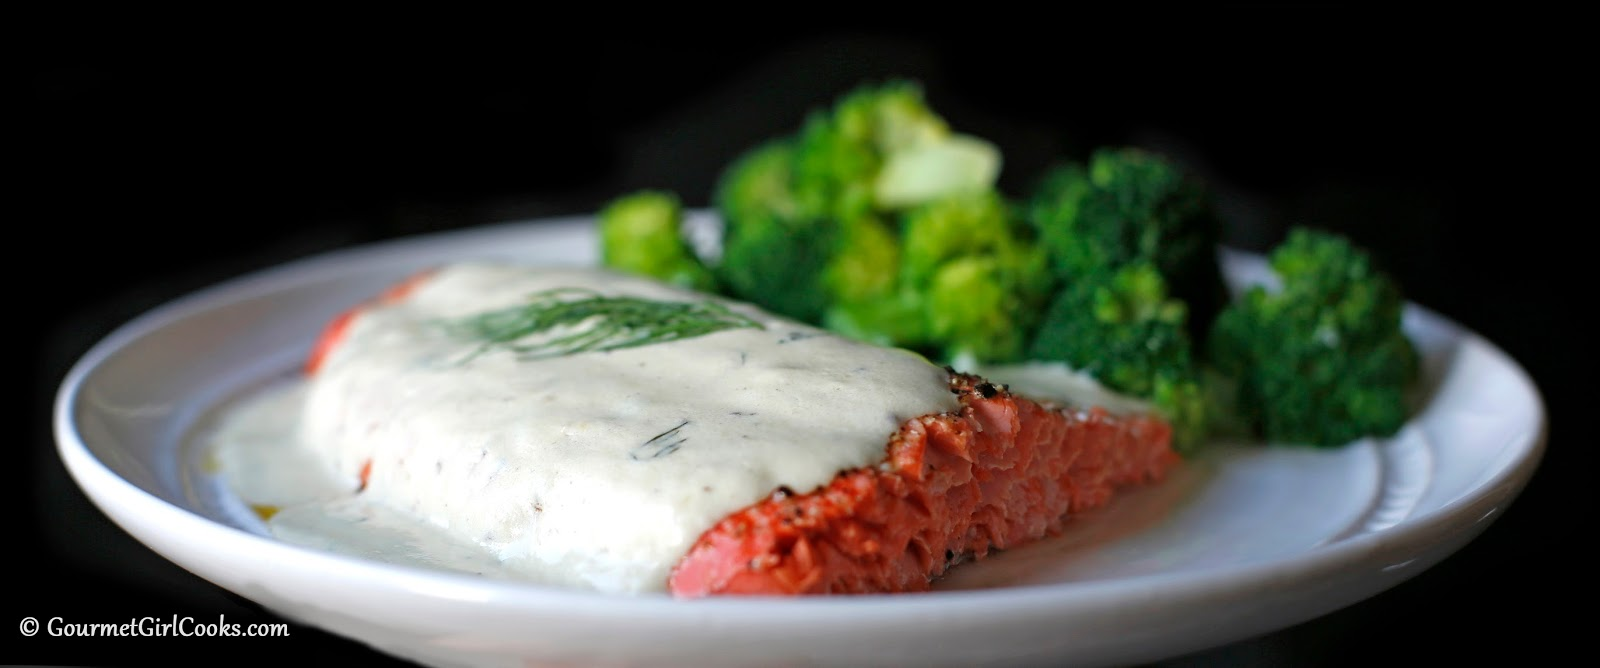 Roasted Copper River Salmon Dijon Cream Sauce With Dill